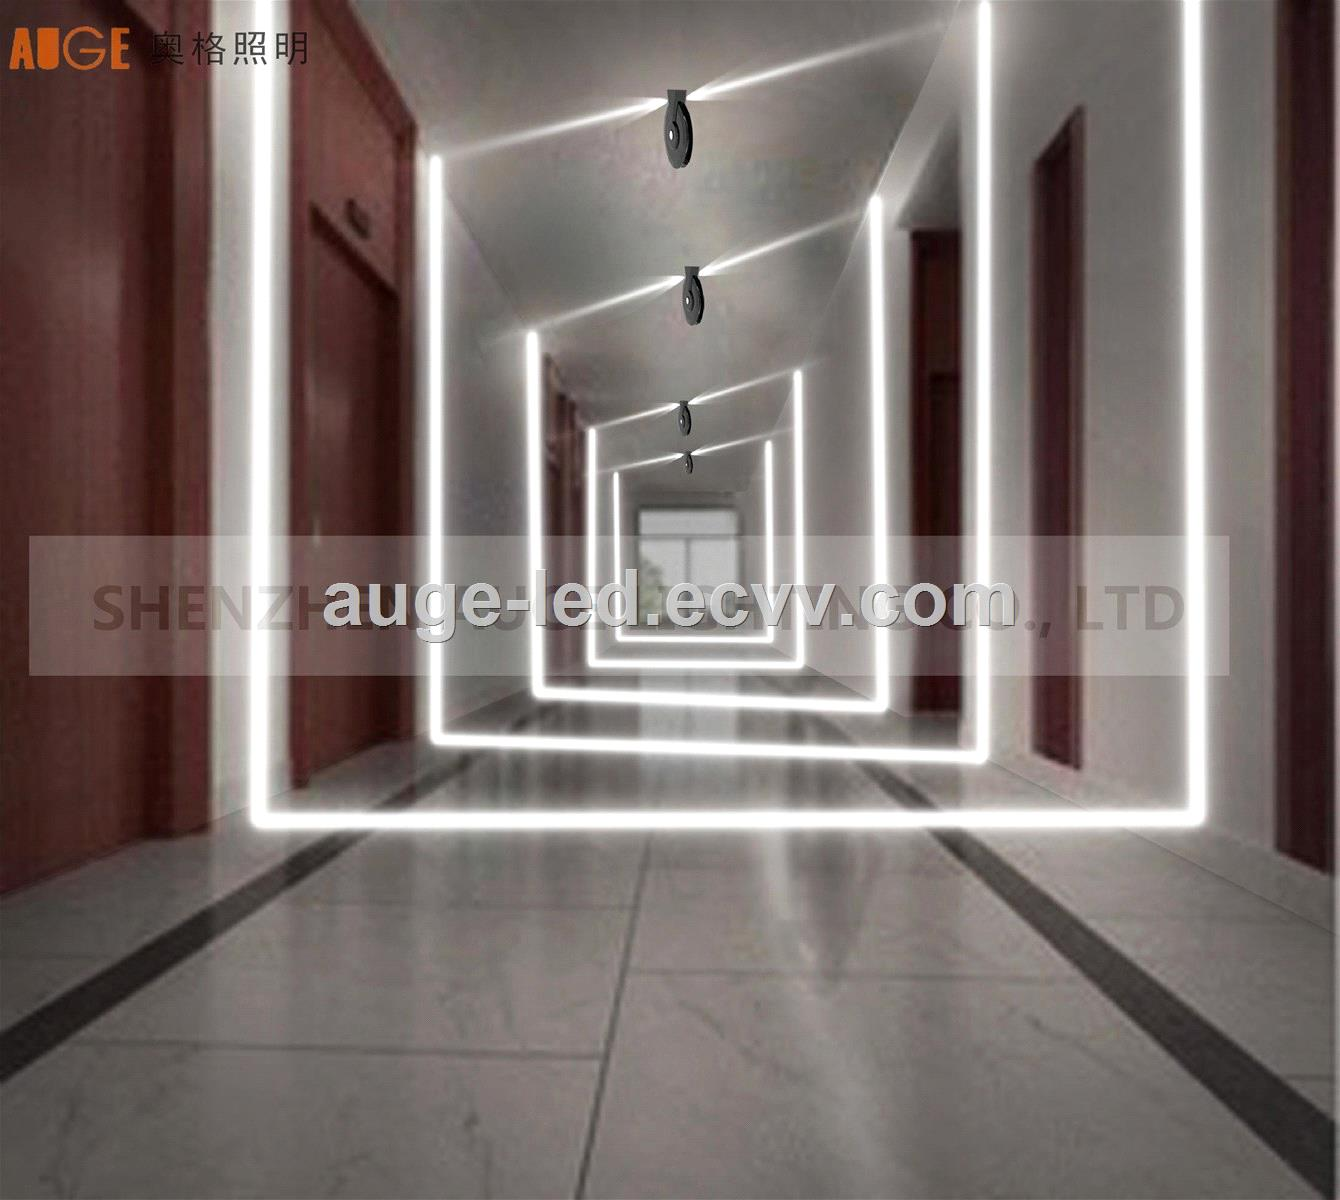 AUGEFIND 360deg led window lamp IP65 window lamp replace stripwall washer lightarchitectural outline decorative lamp